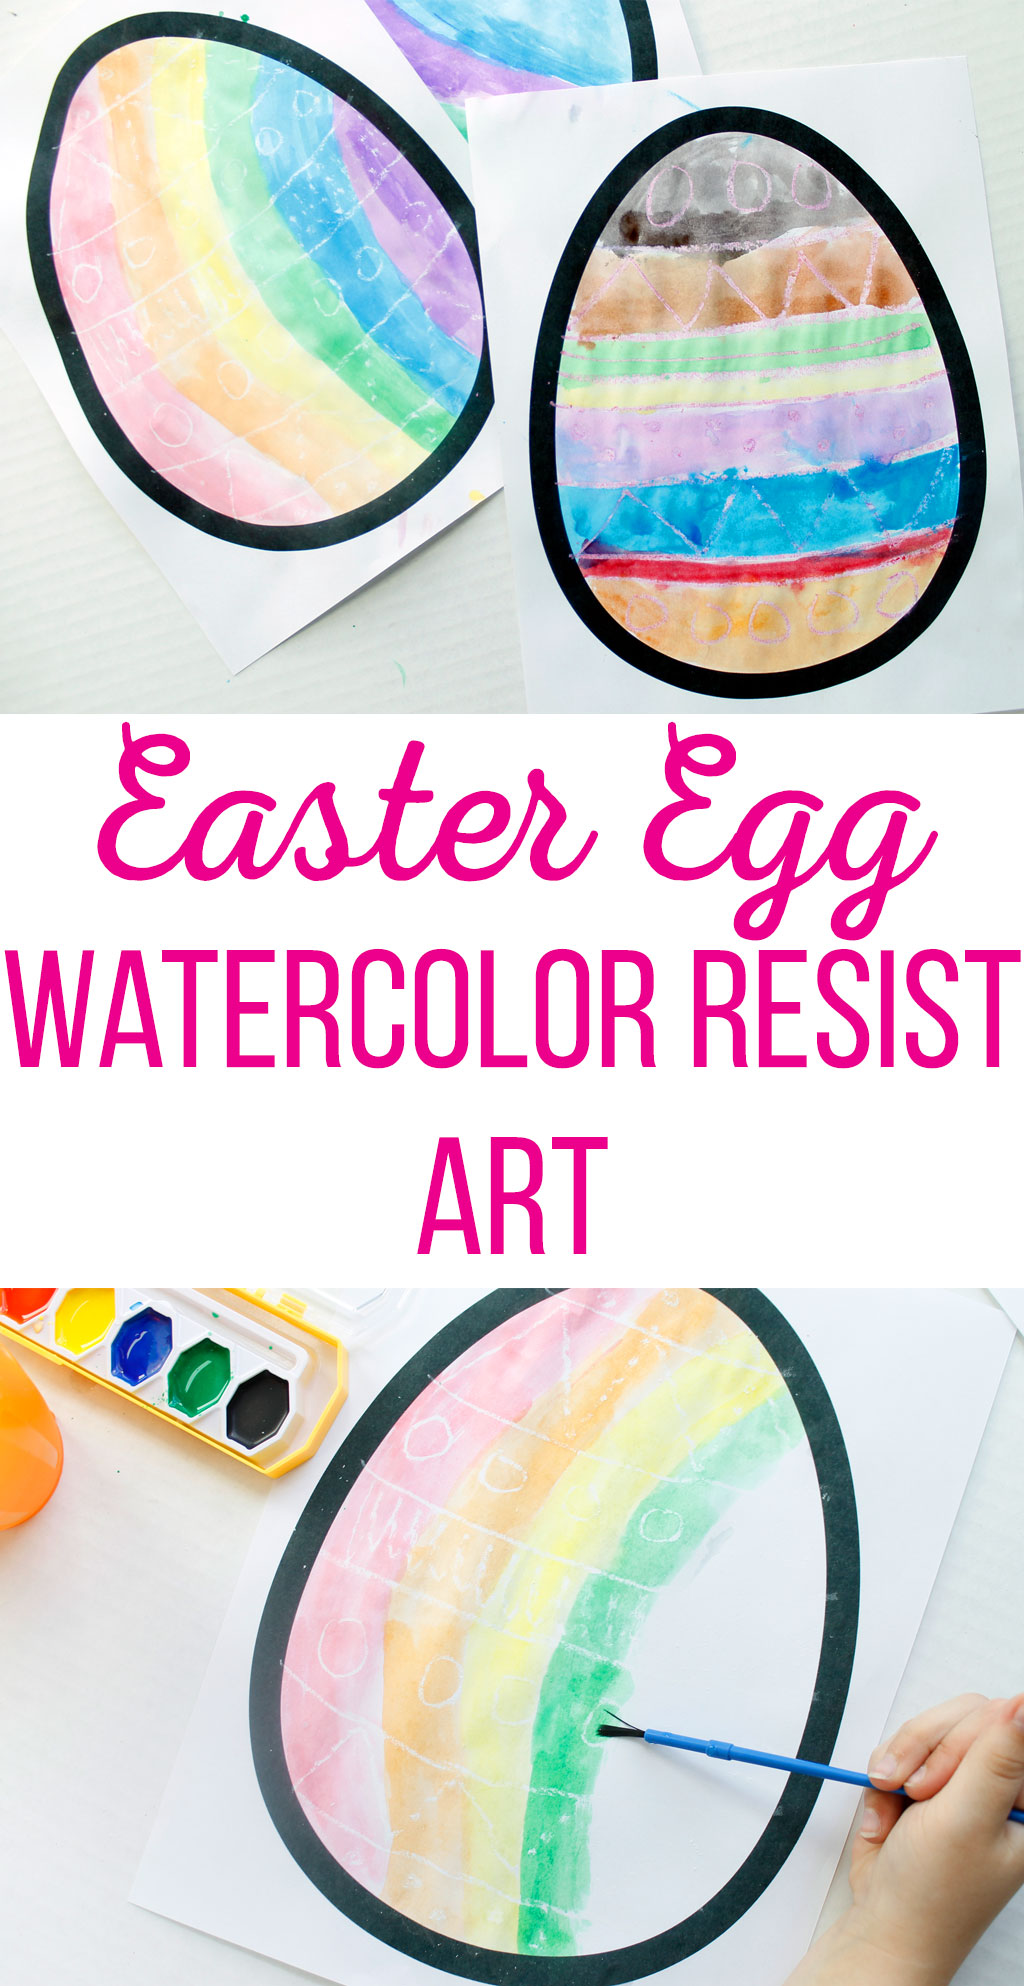 Easter Egg Watercolor Resist Art is a great craft for kids. They will love making designs appear when they use watercolor paints over the crayon.